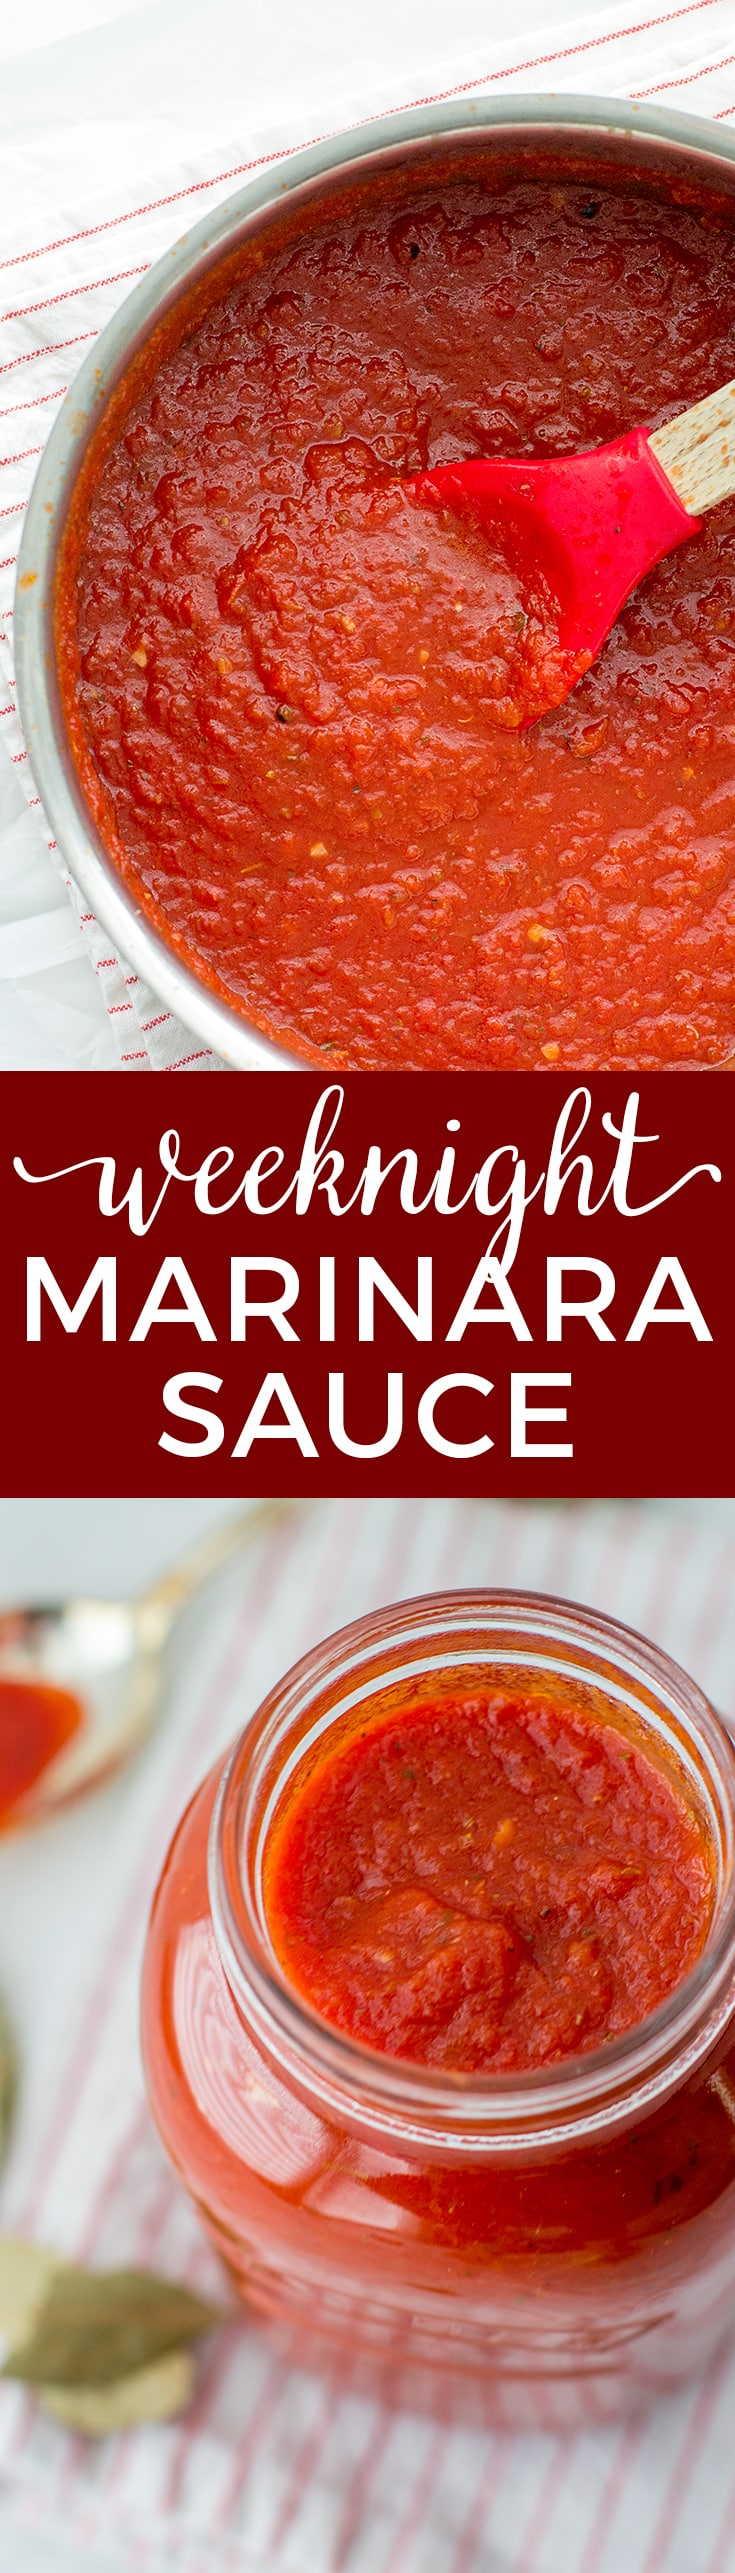 Simple weeknight marinara sauce is a quick dinner hero. Perfect for pizza, pasta, and more!